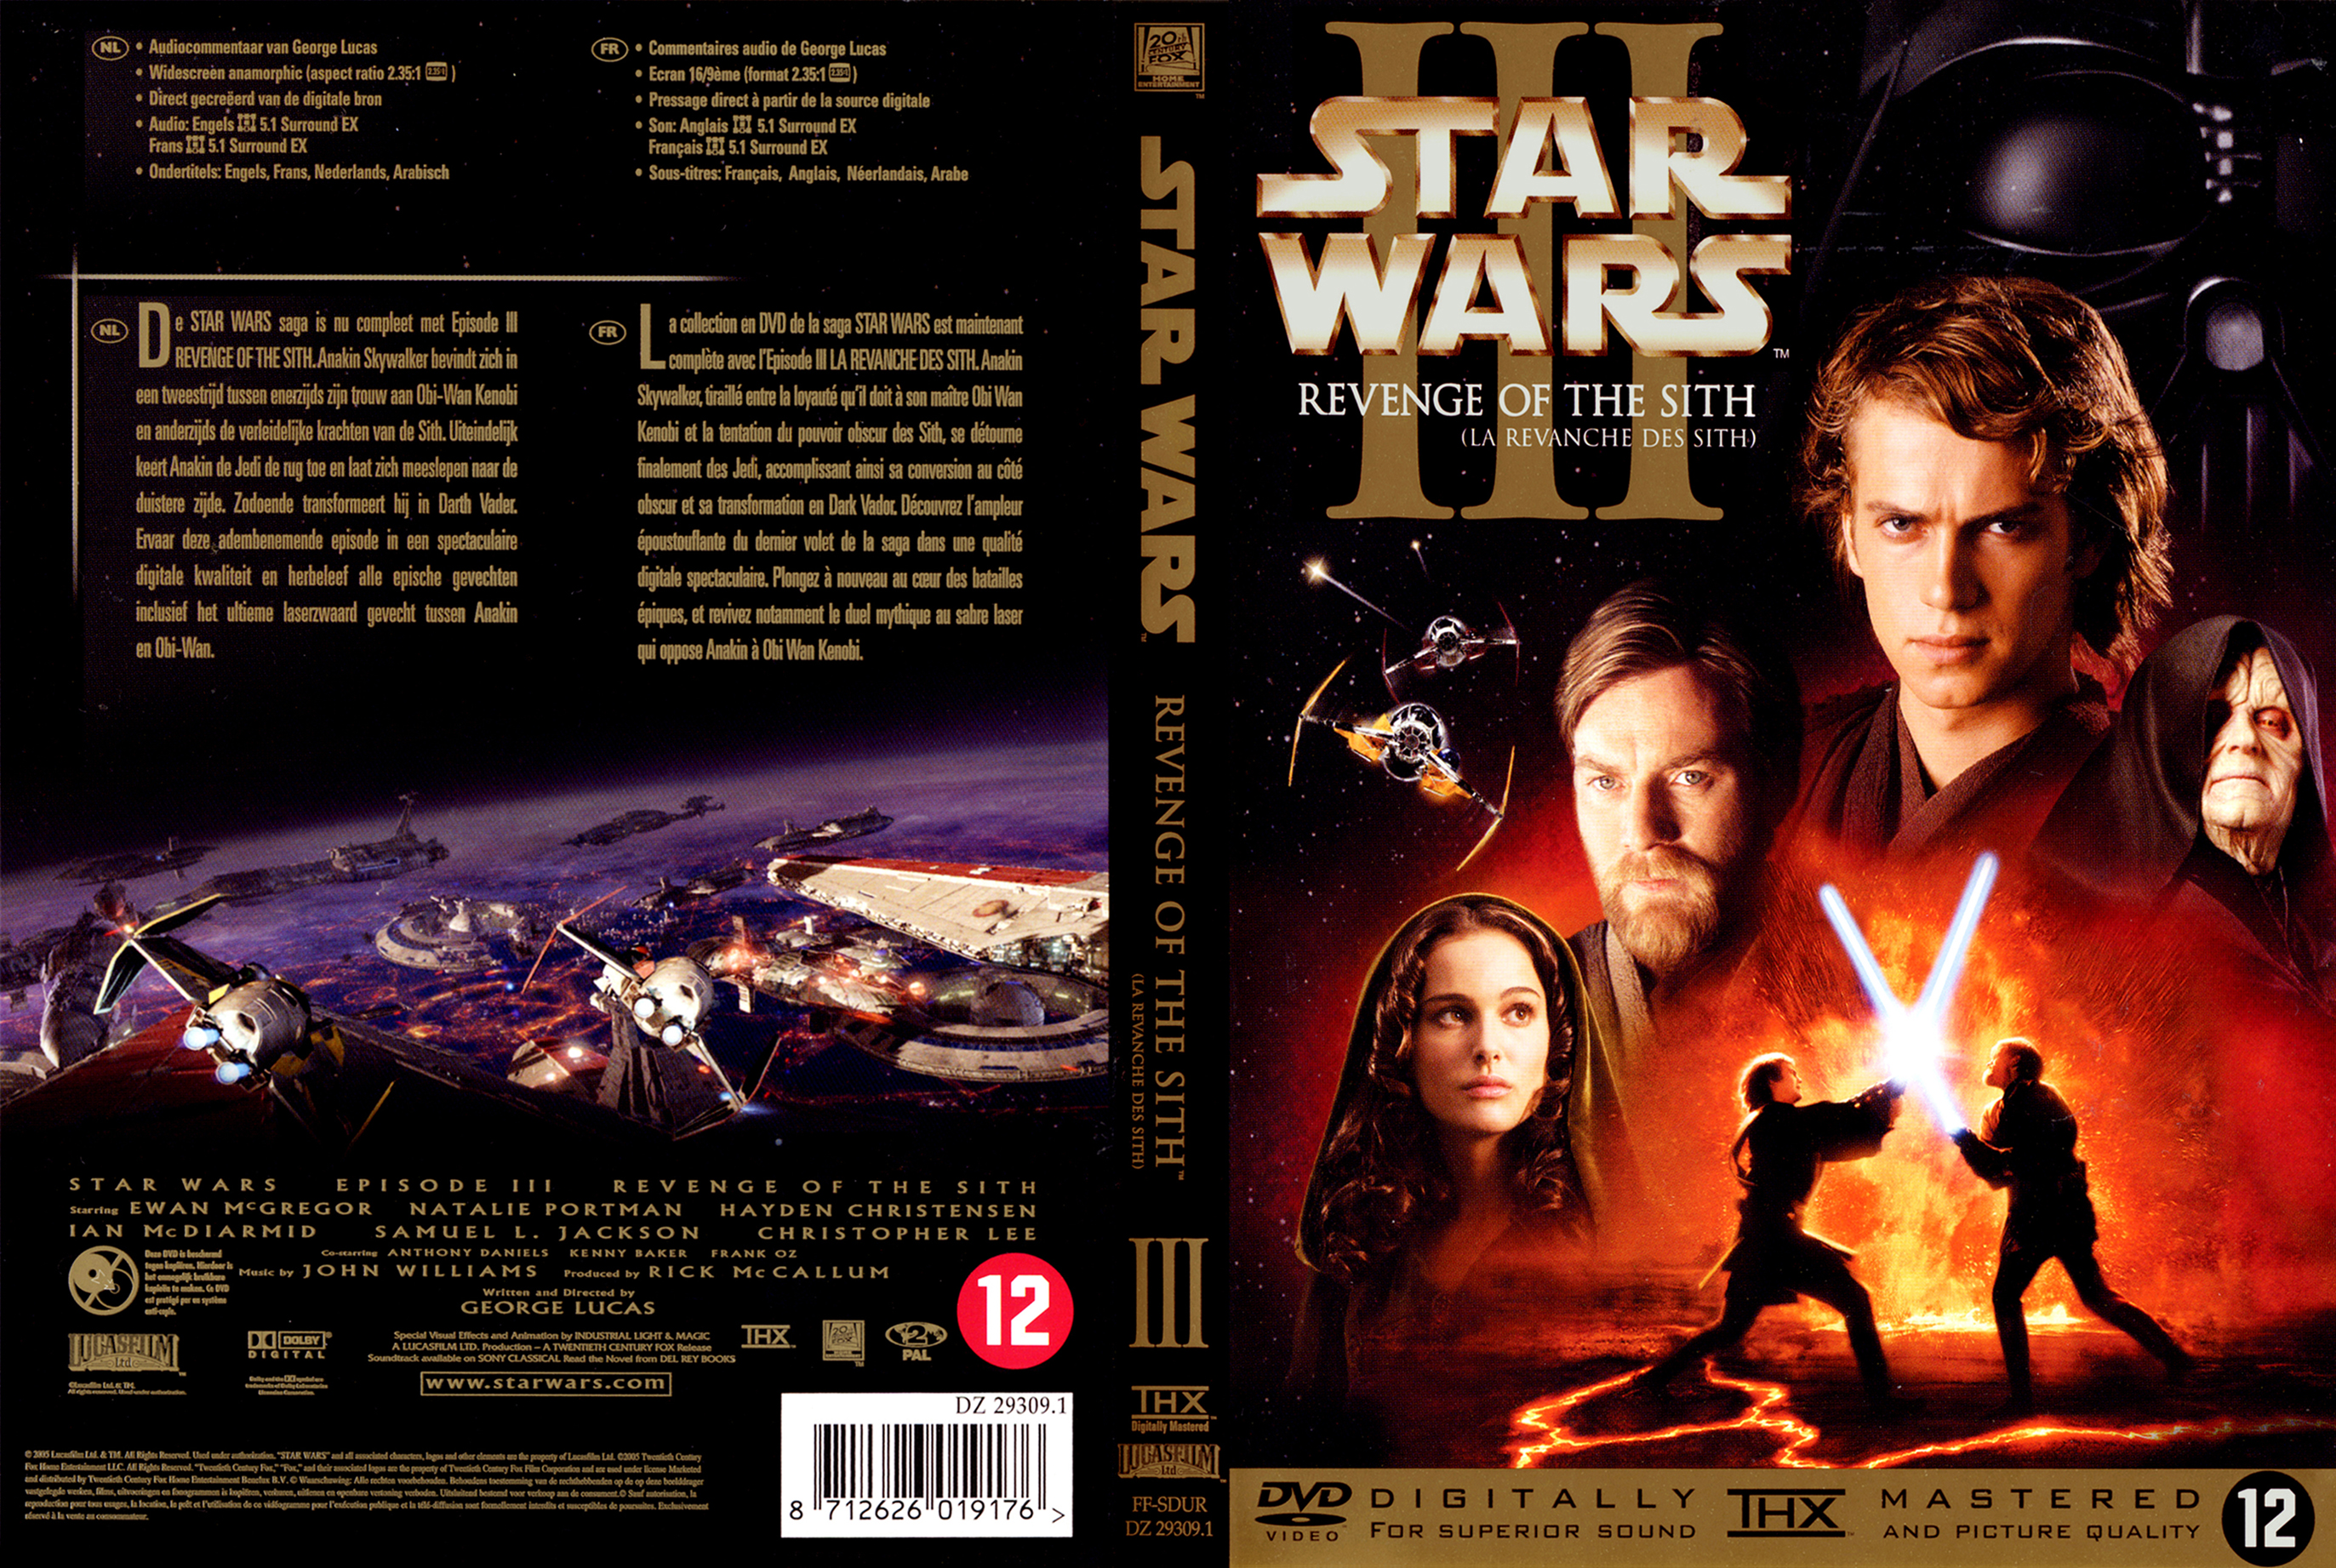 Was the star wars episode iii revenge of the sith torrent brrip why.